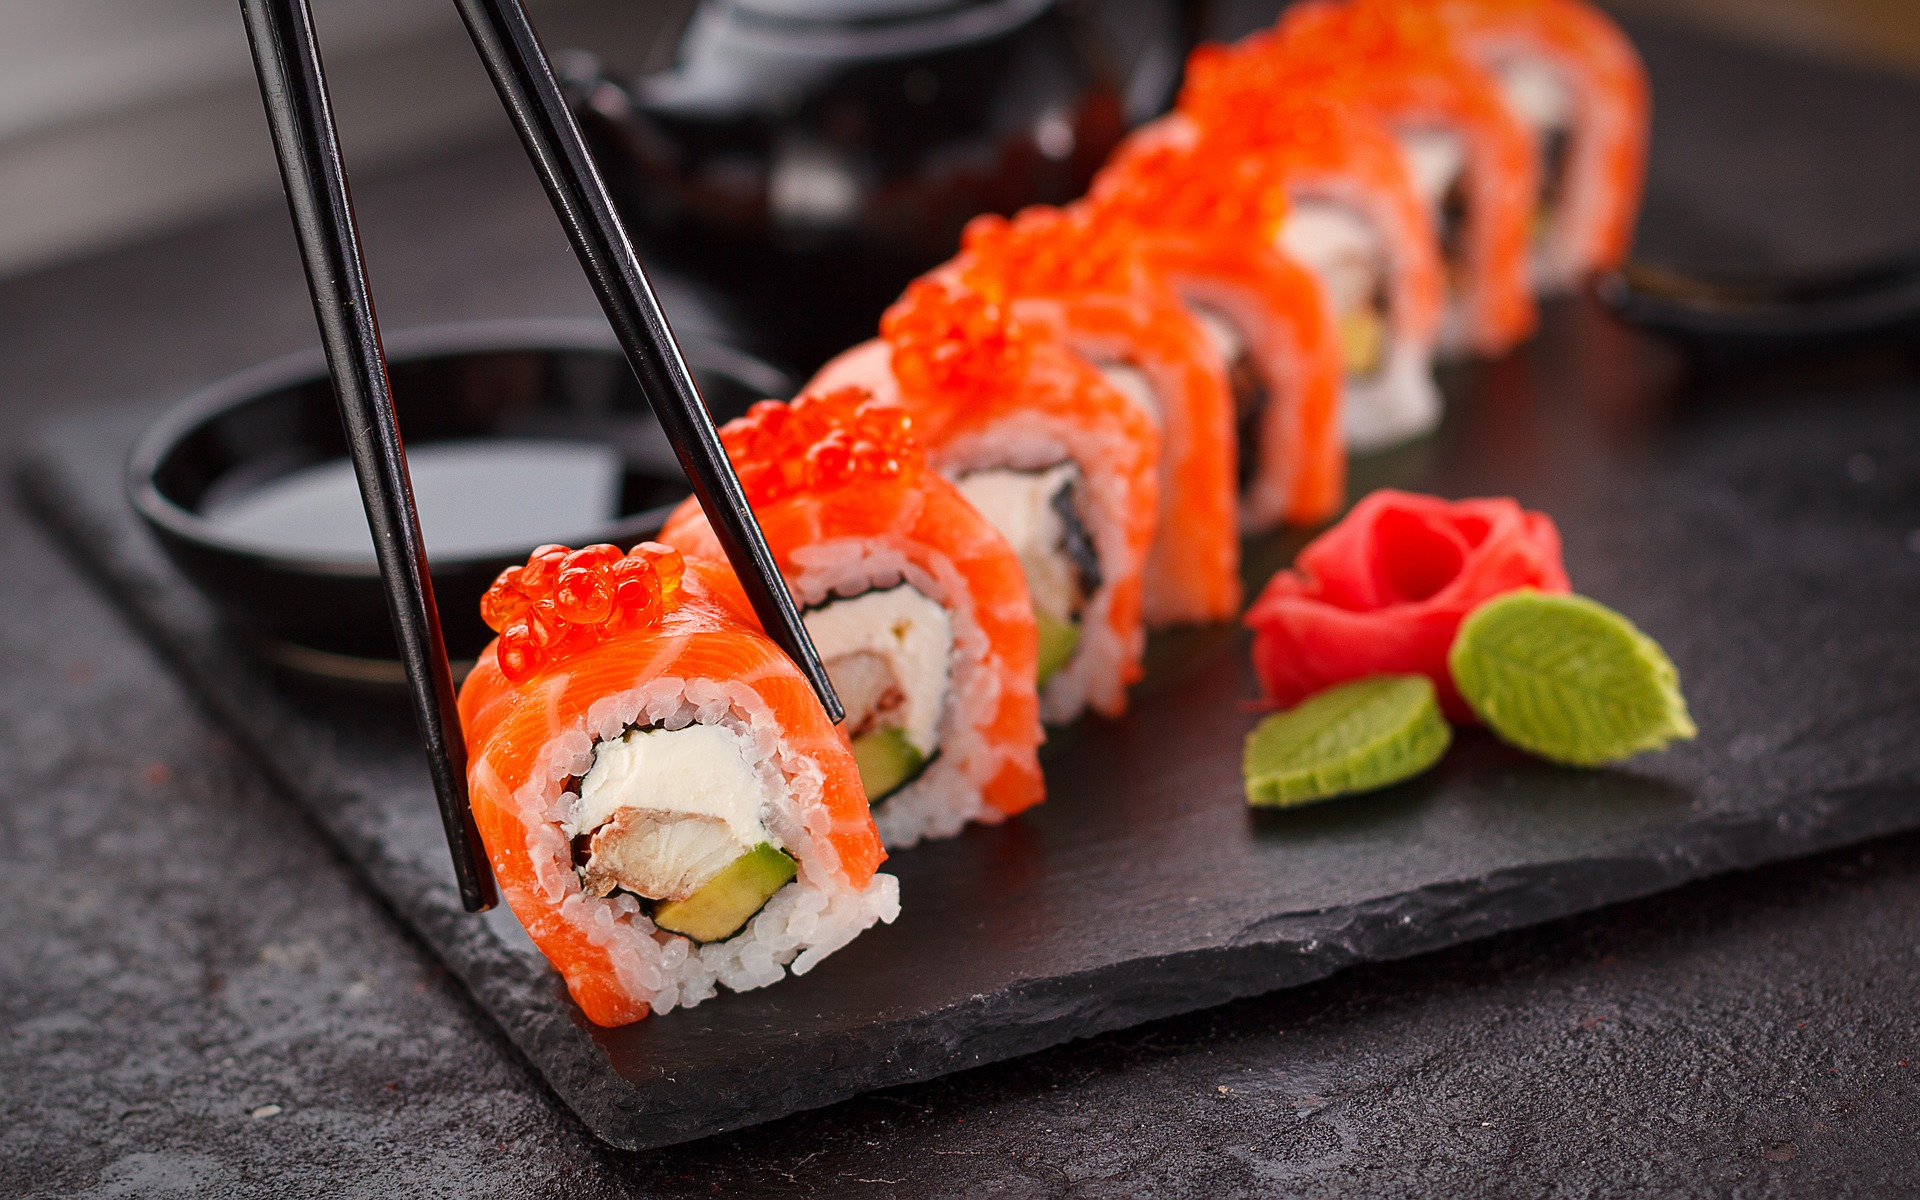 Food That You Don't Wanna Miss – Sushi It Is!